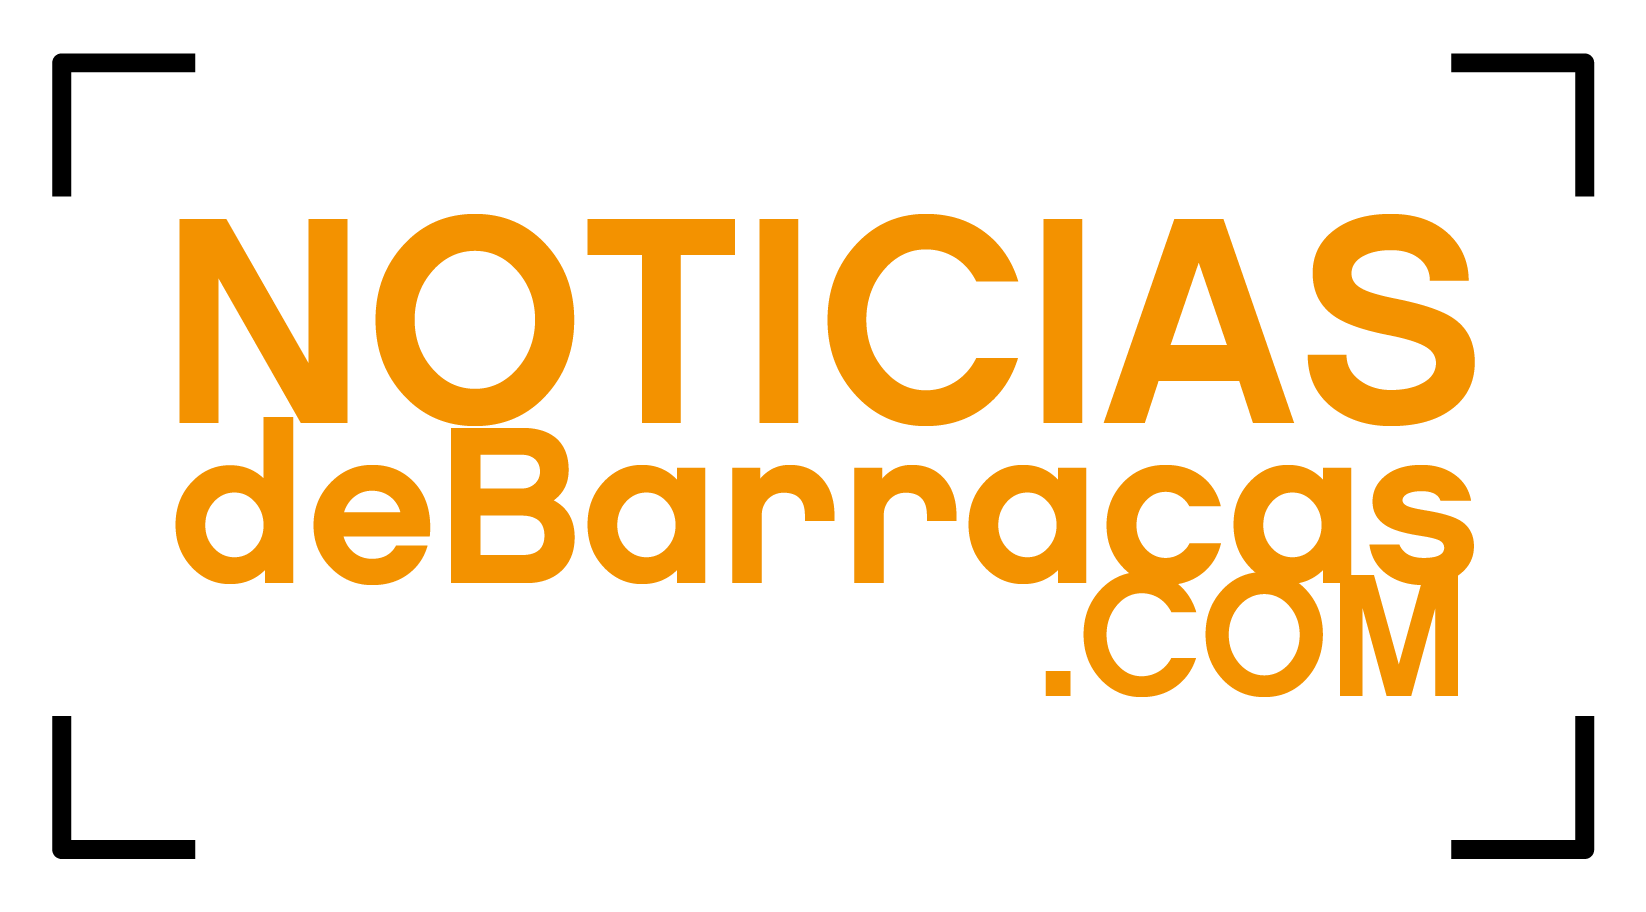 Noticias del barrio